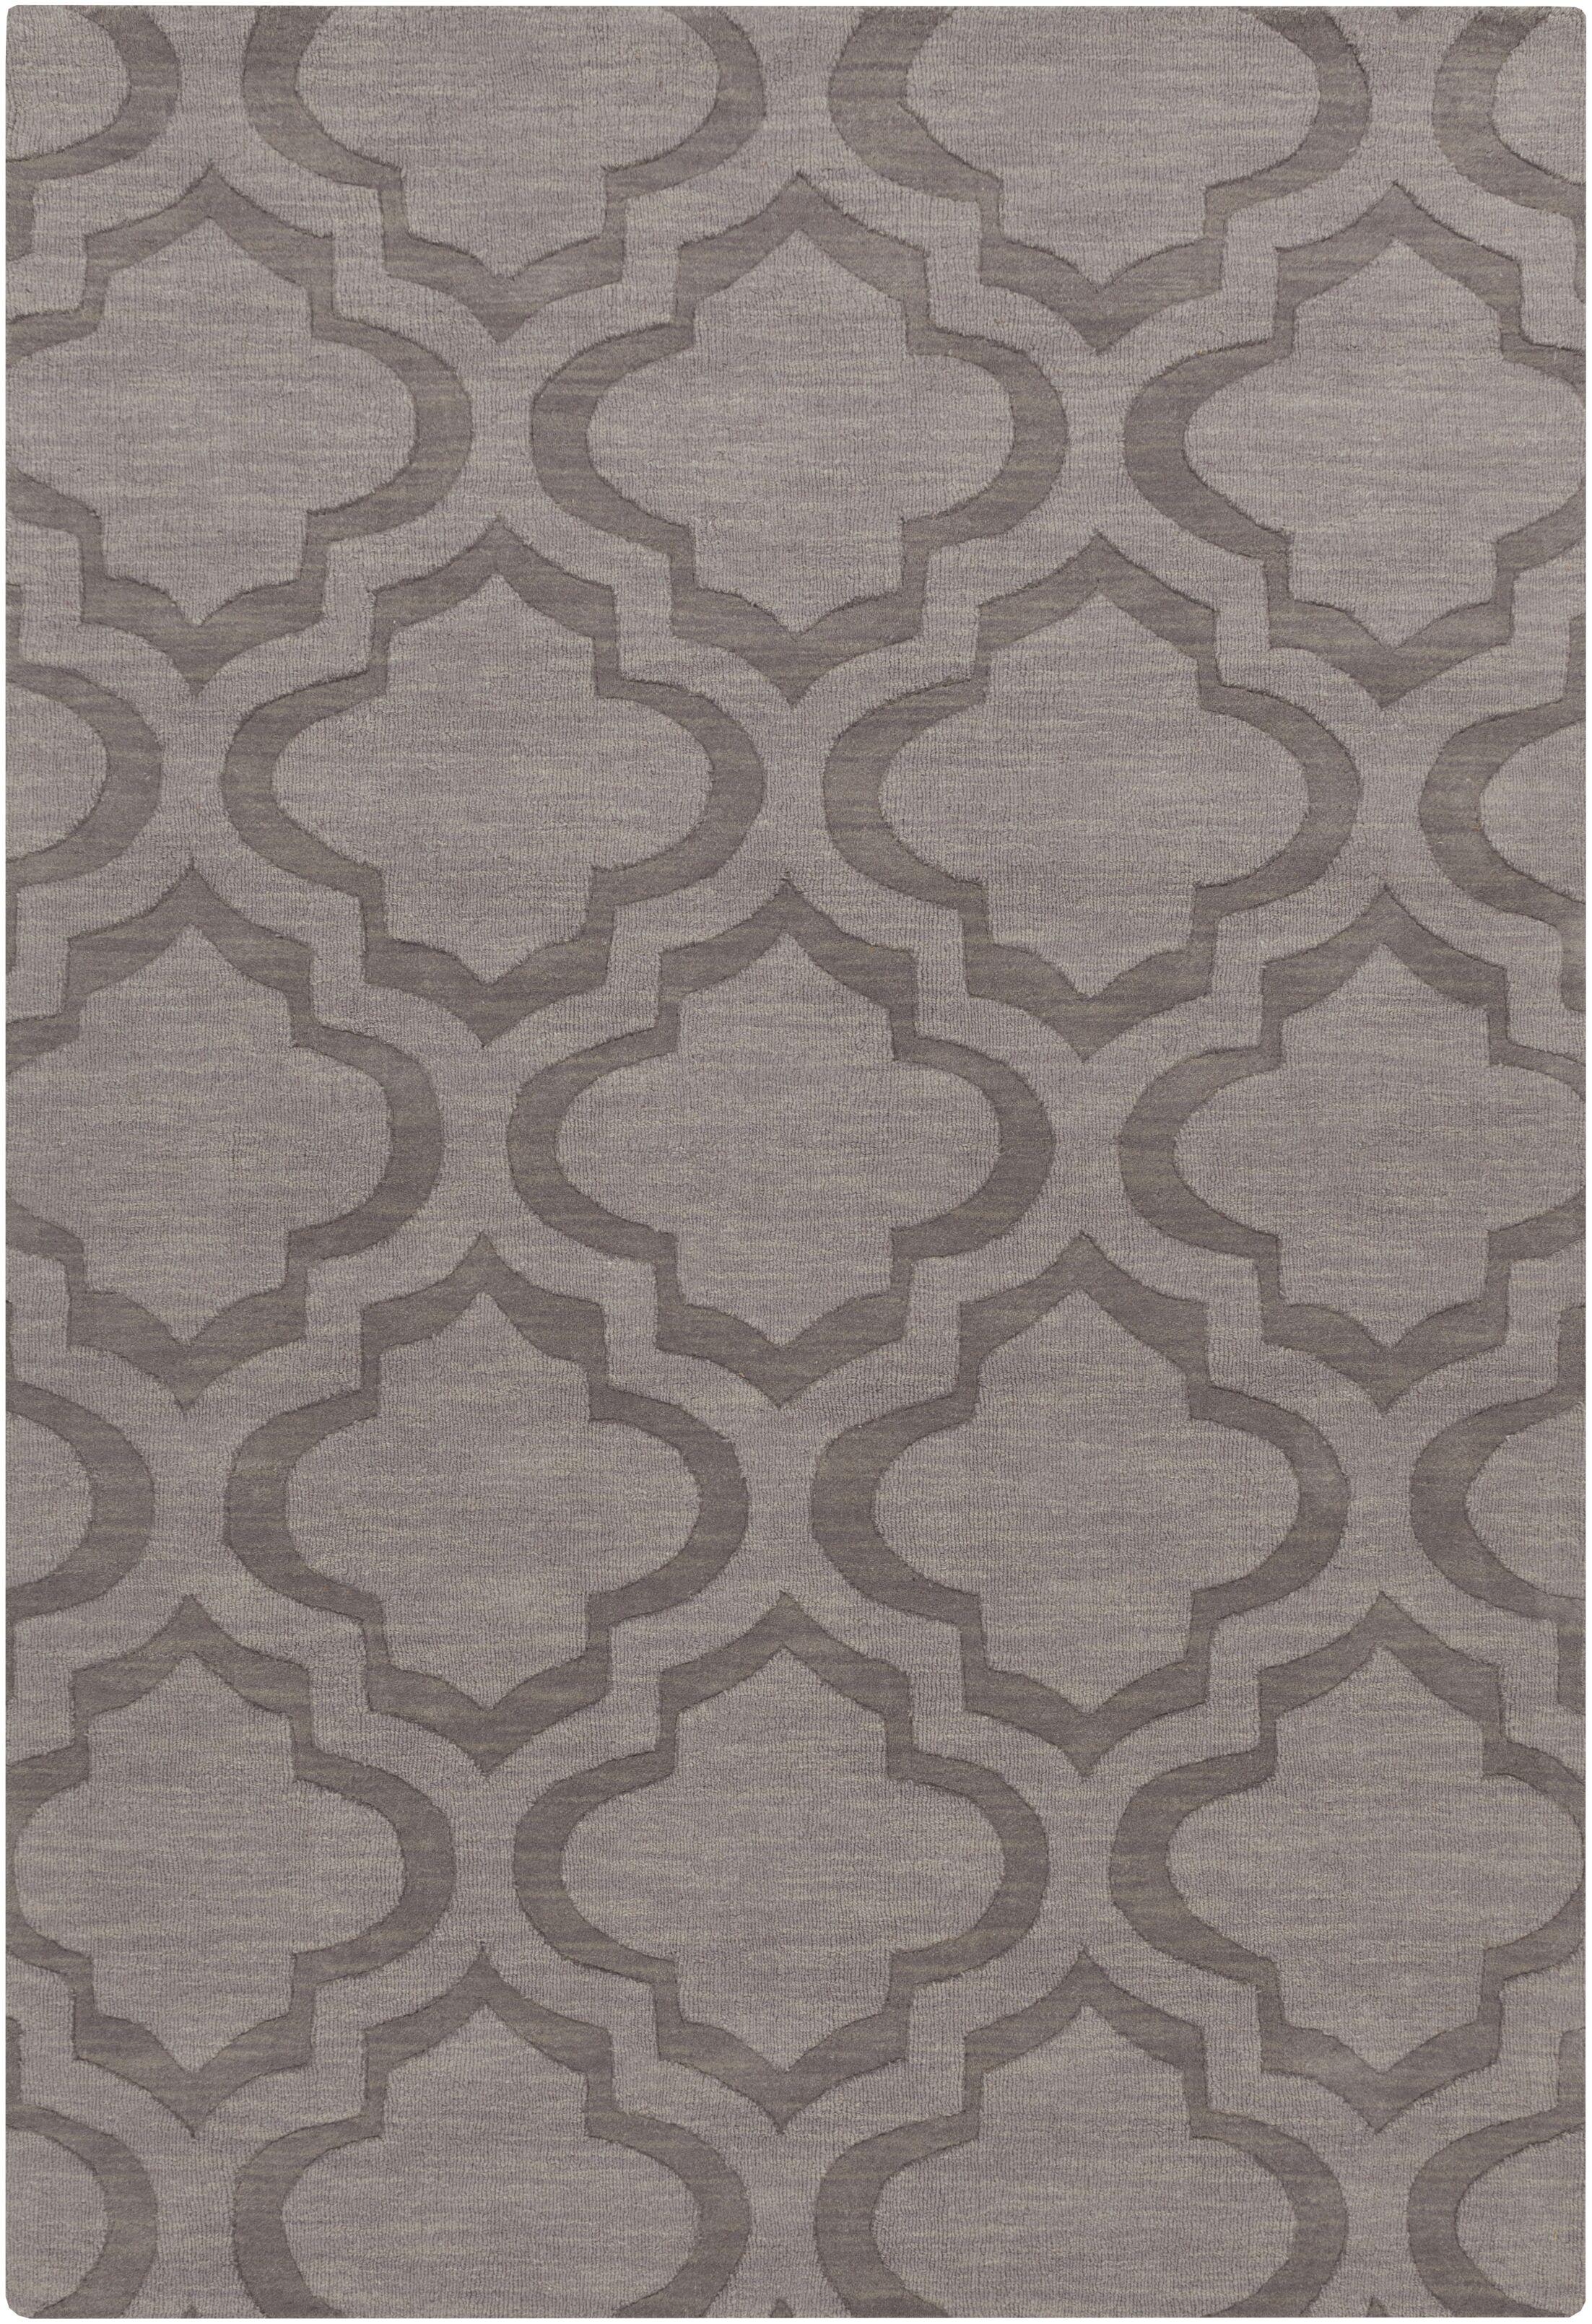 Castro Hand Woven Wool Charcoal Area Rug Rug Size: Rectangle 3' x 5'